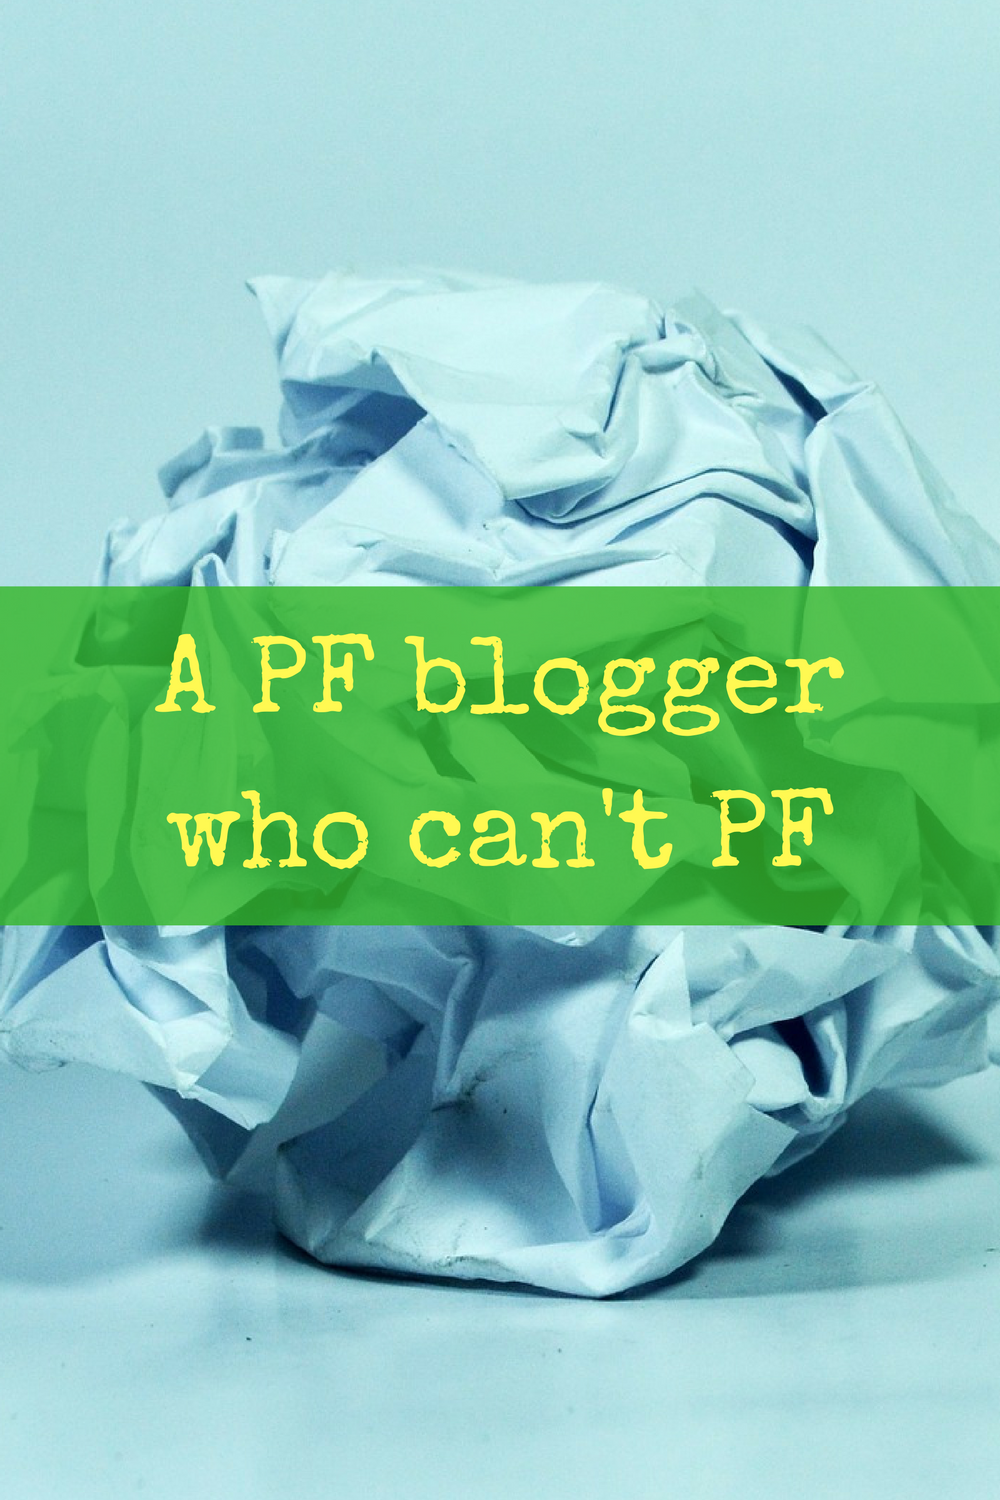 a-pf-blogger-who-cant-pf